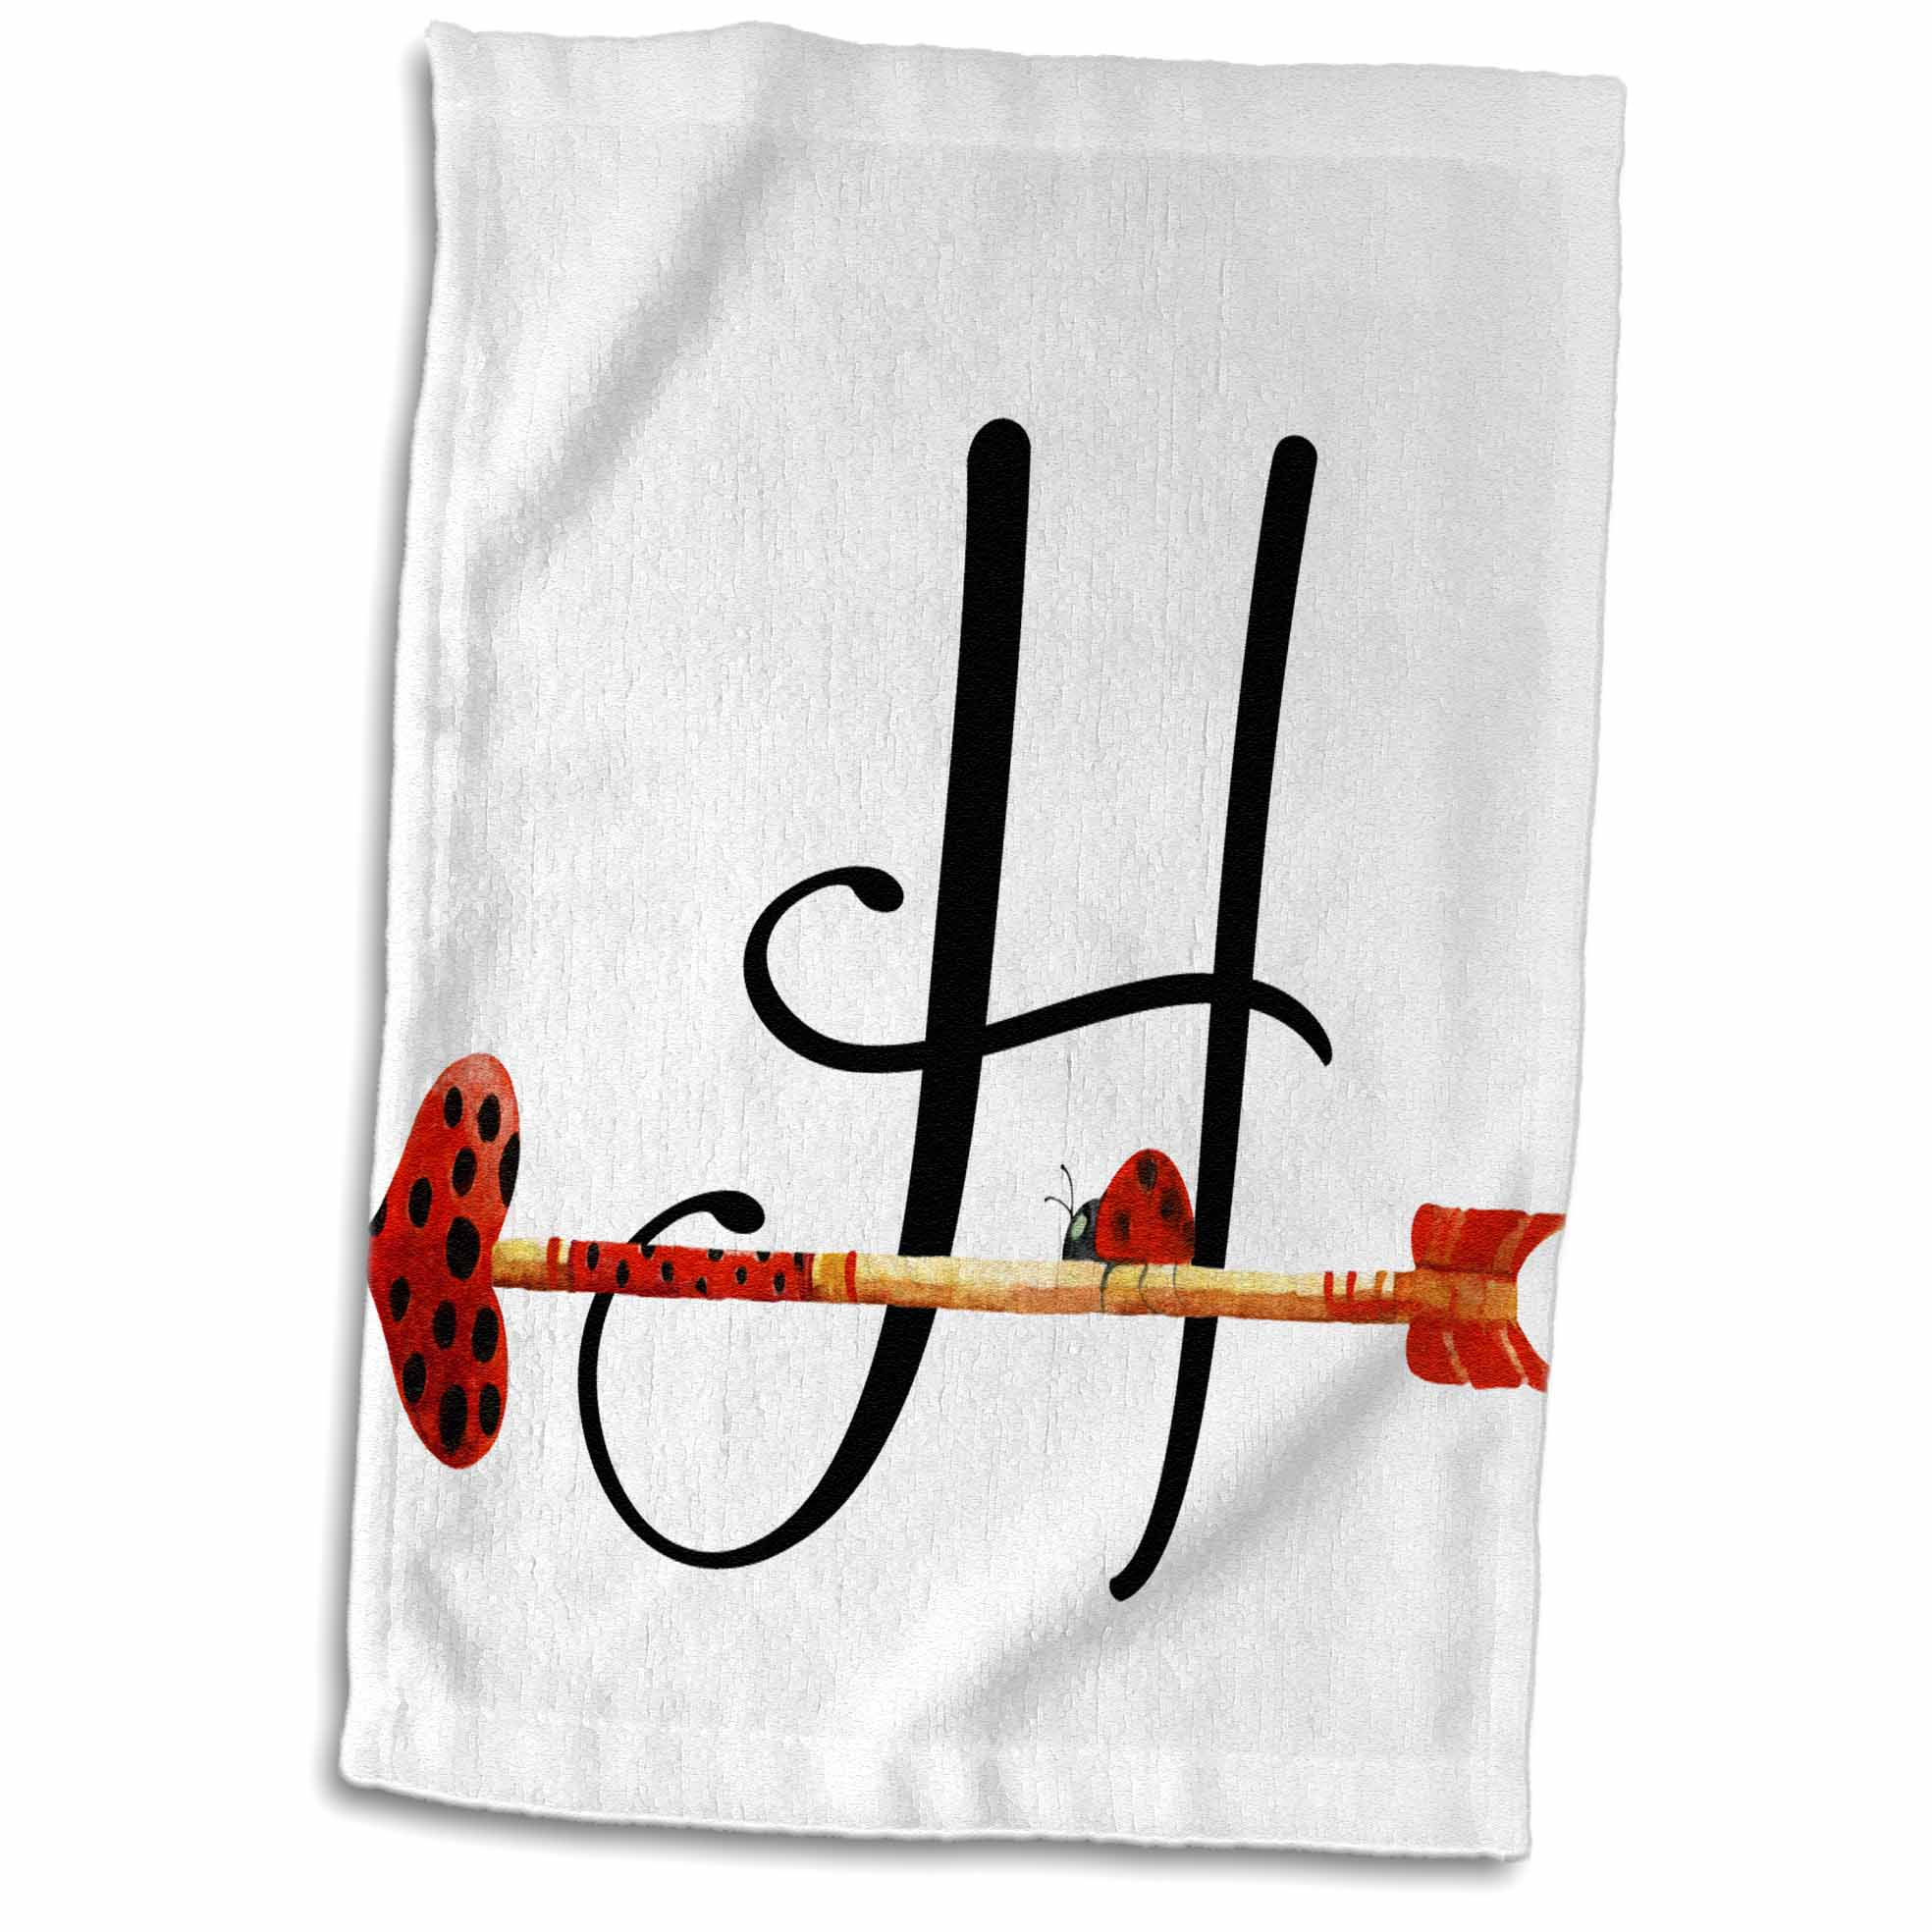 3dRose Cute Watercolor Red and Black Ladybug Heart Arrow Monogram H - Towel, 15 by 22-inch